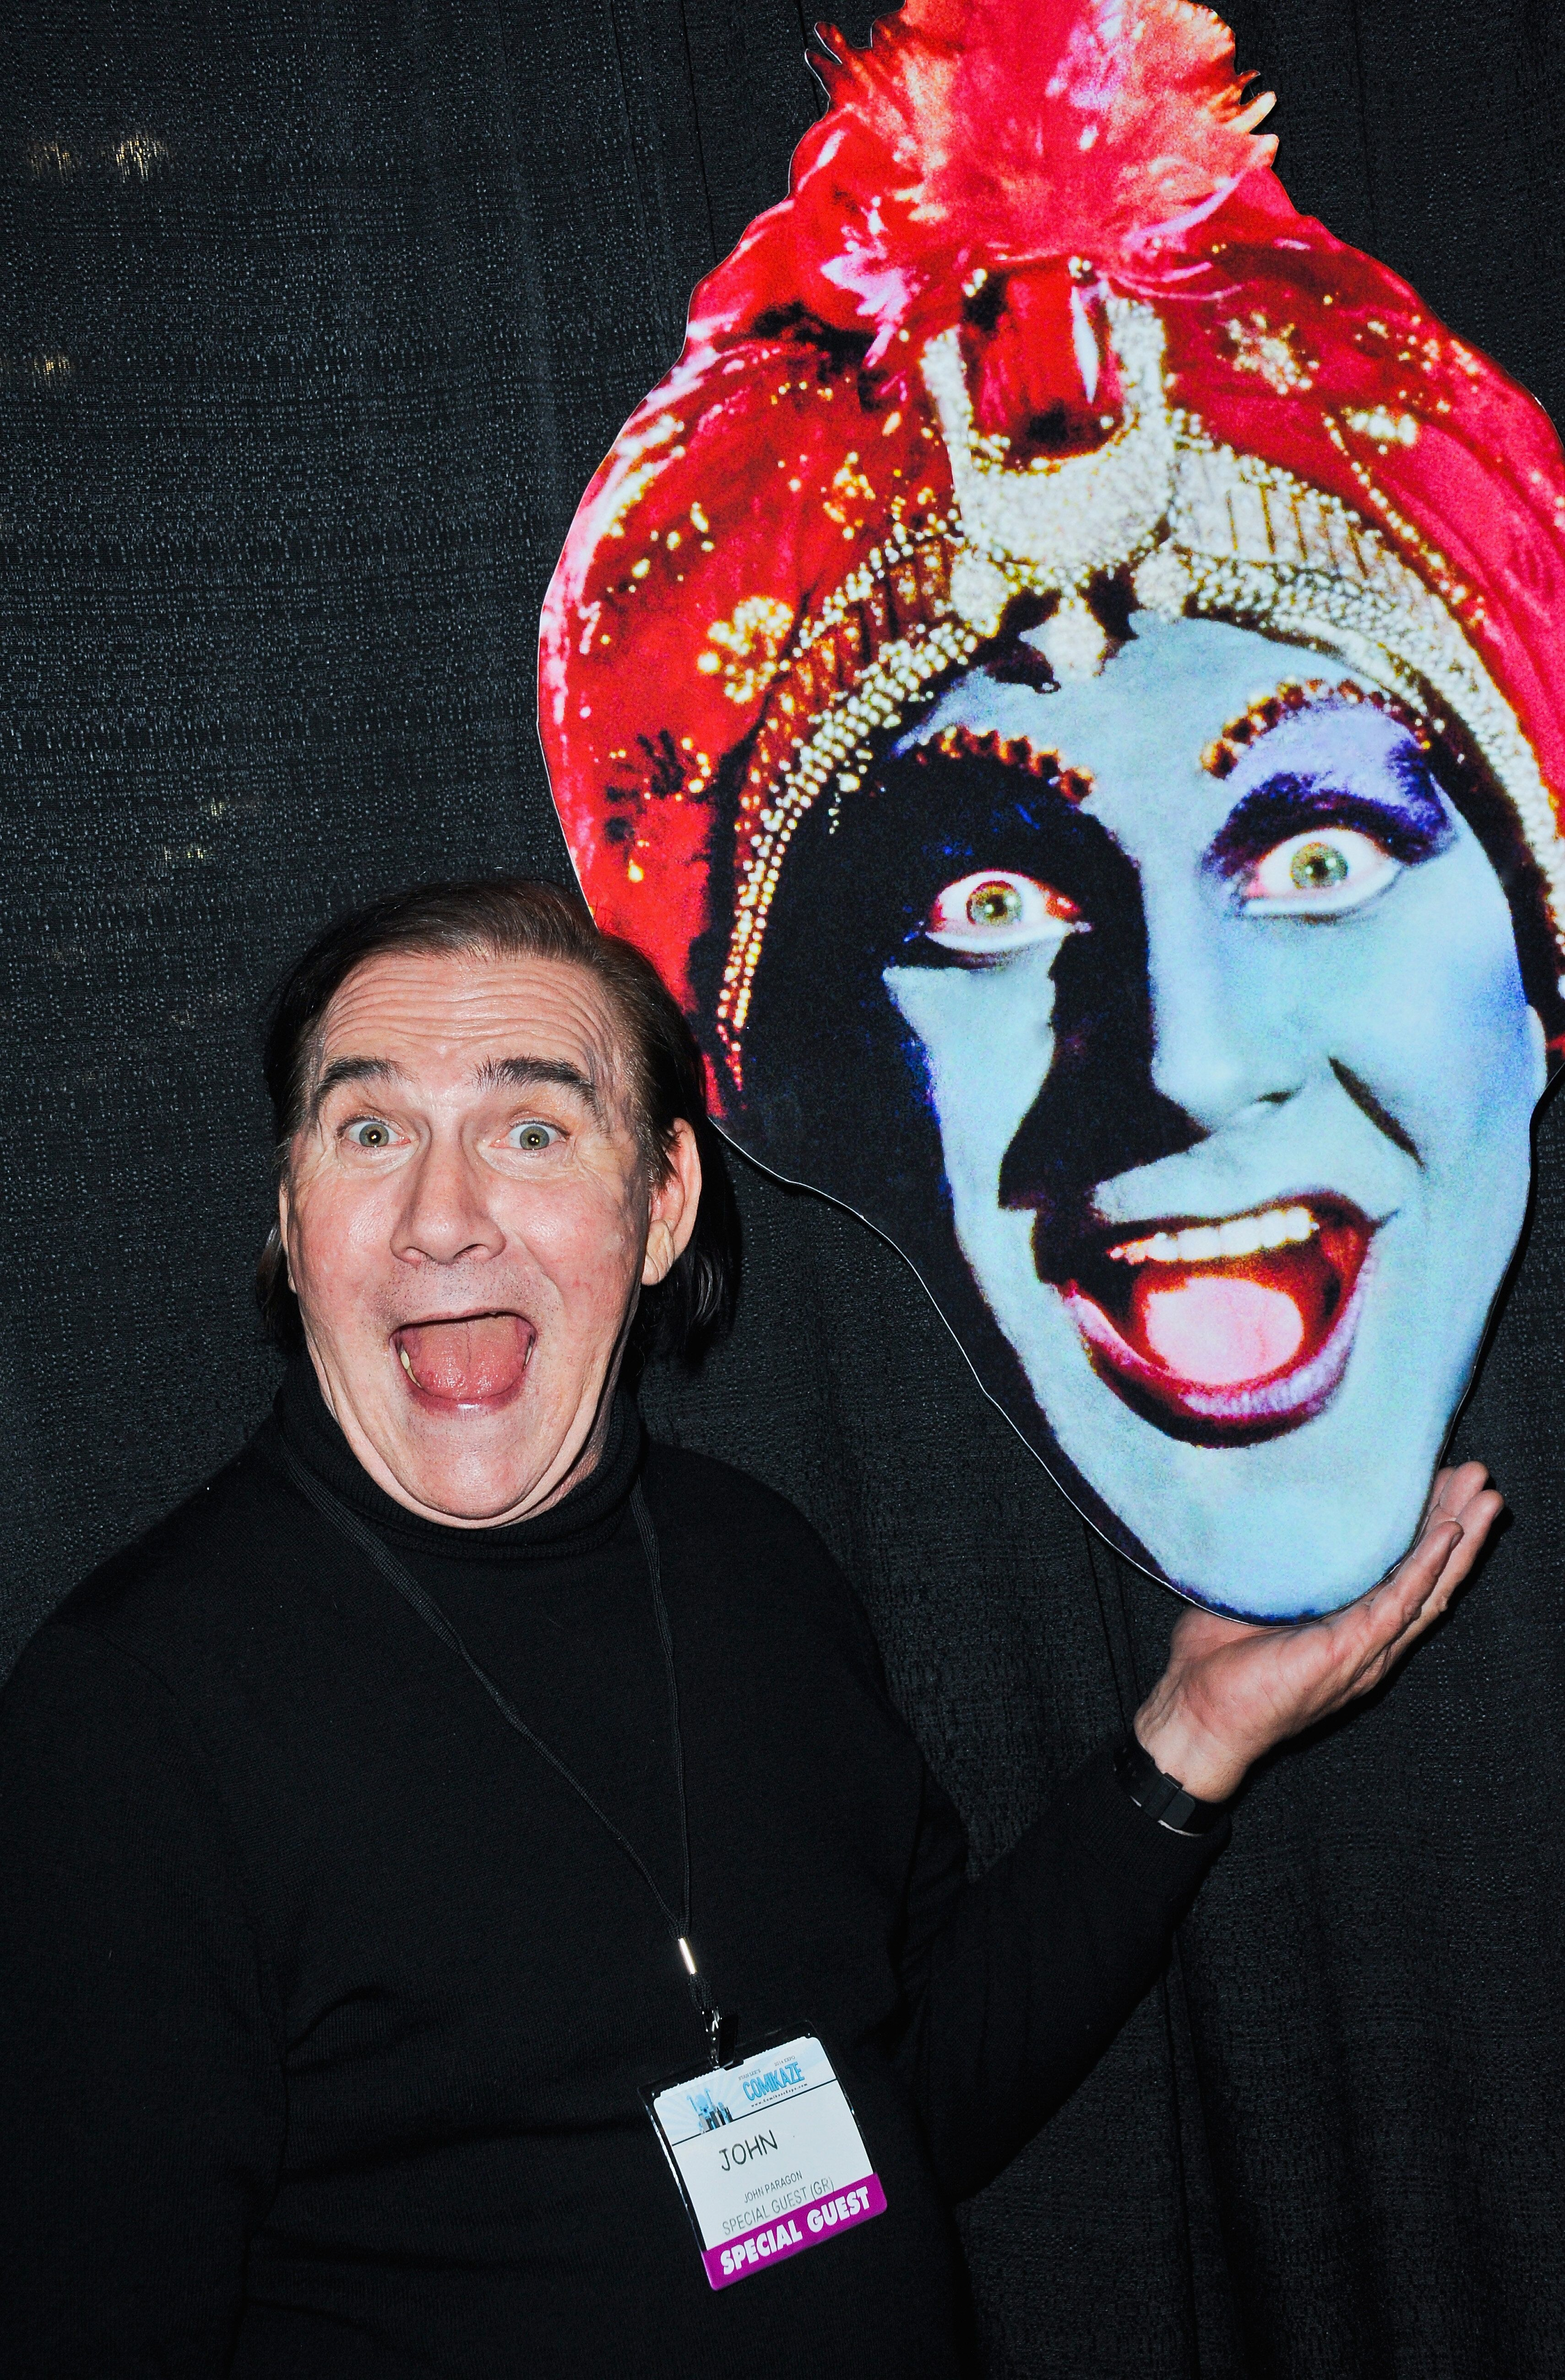 """Actor John Paragon, who played Jambi the Genie on """"Pee-wee's Playhouse,"""" attends Day 2 of the Third Annual Stan Lee's Comikaz"""